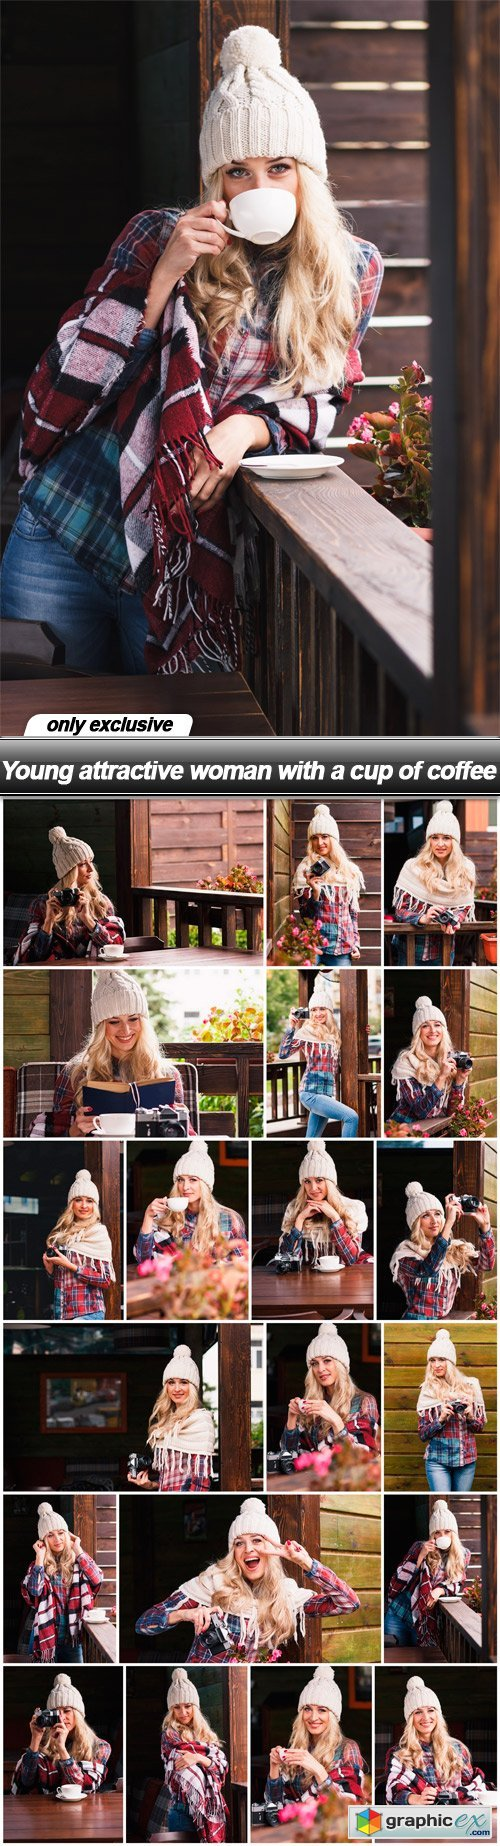 Young attractive woman with a cup of coffee - 20 UHQ JPEG